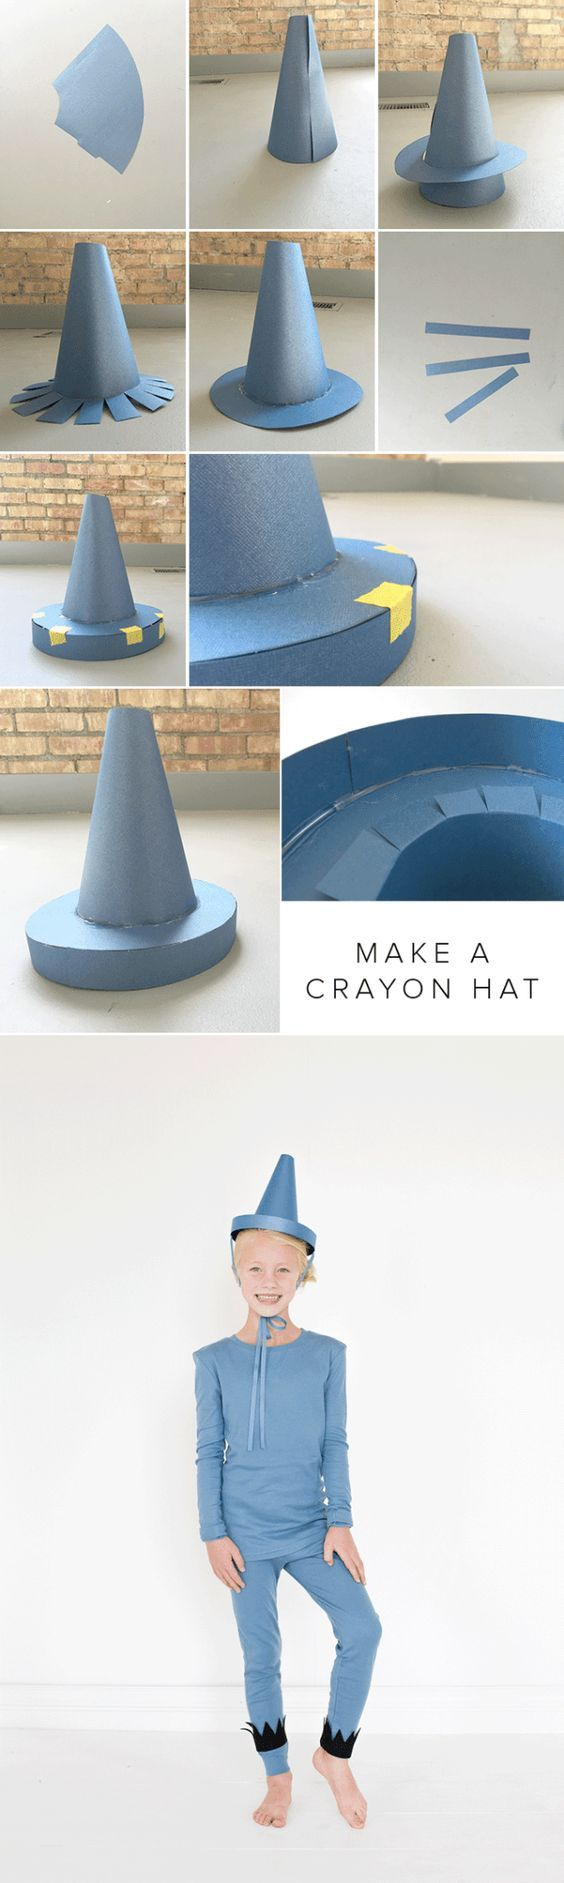 The Day the Crayons Quit crayon hat tutorial